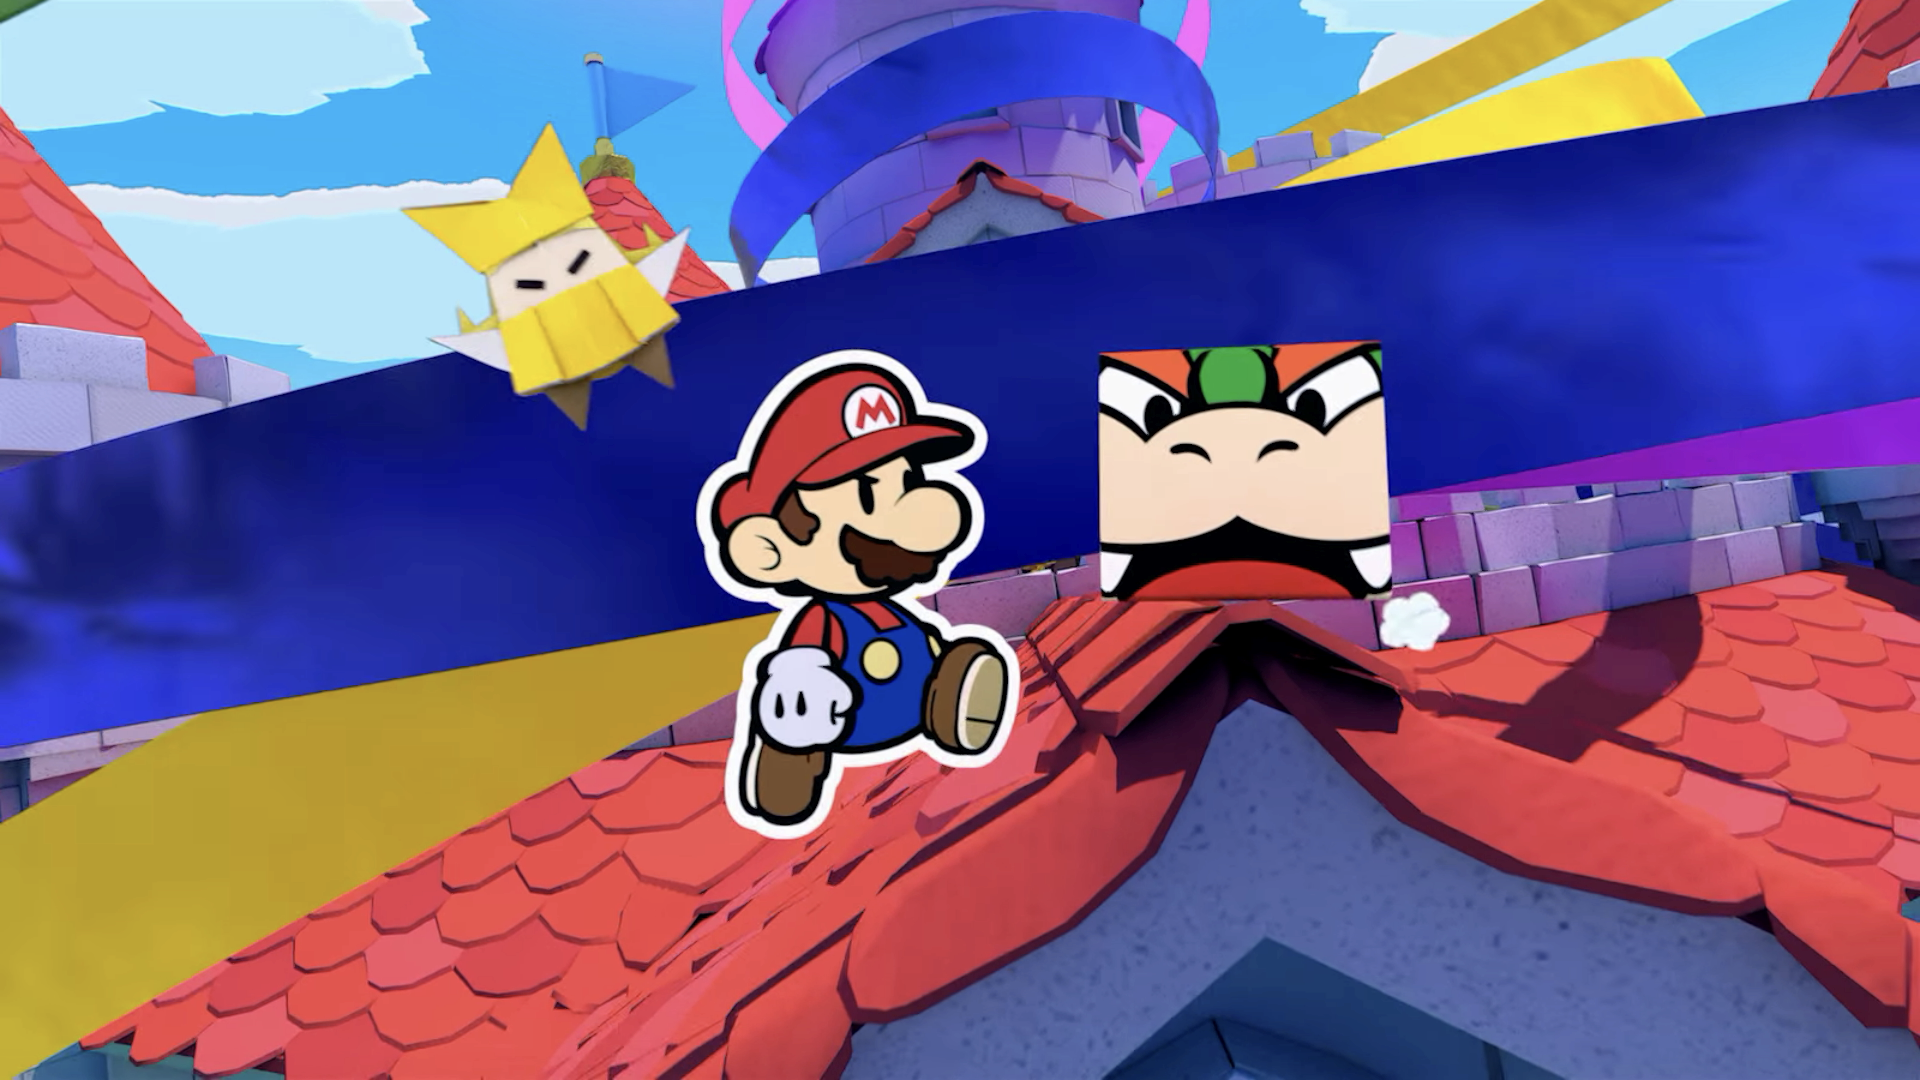 A screencap of Paper Mario on the Switch.